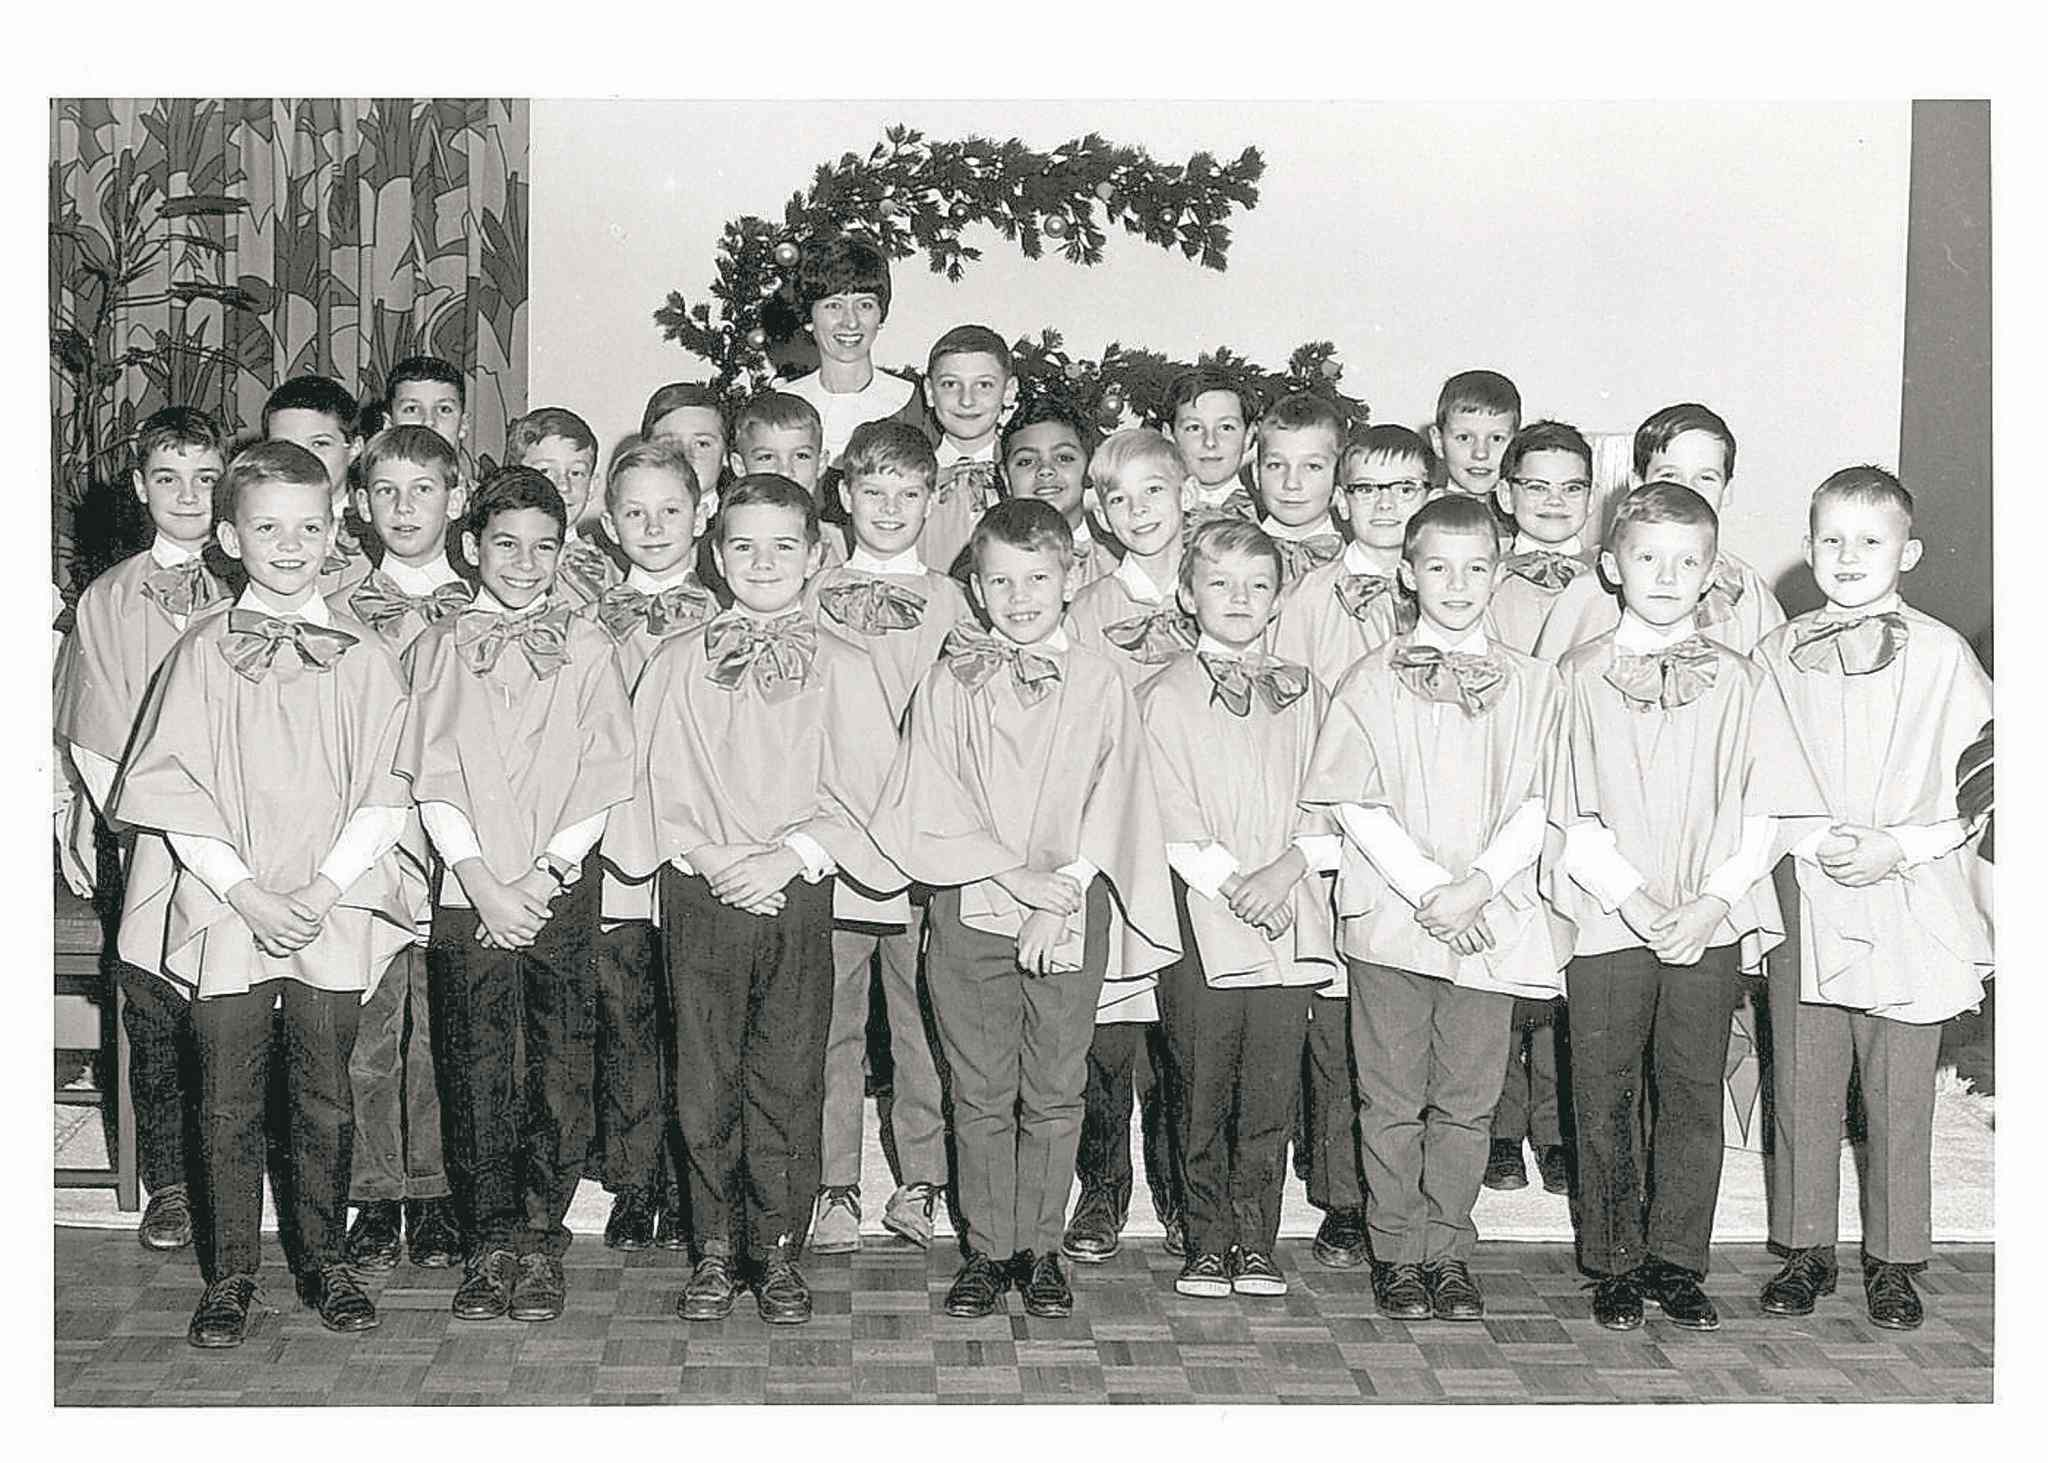 The Winnipeg Boys' Choir circa 1967 at the Grill Room in Eaton's during the Christmas season. The choir is celebrating 90 years.